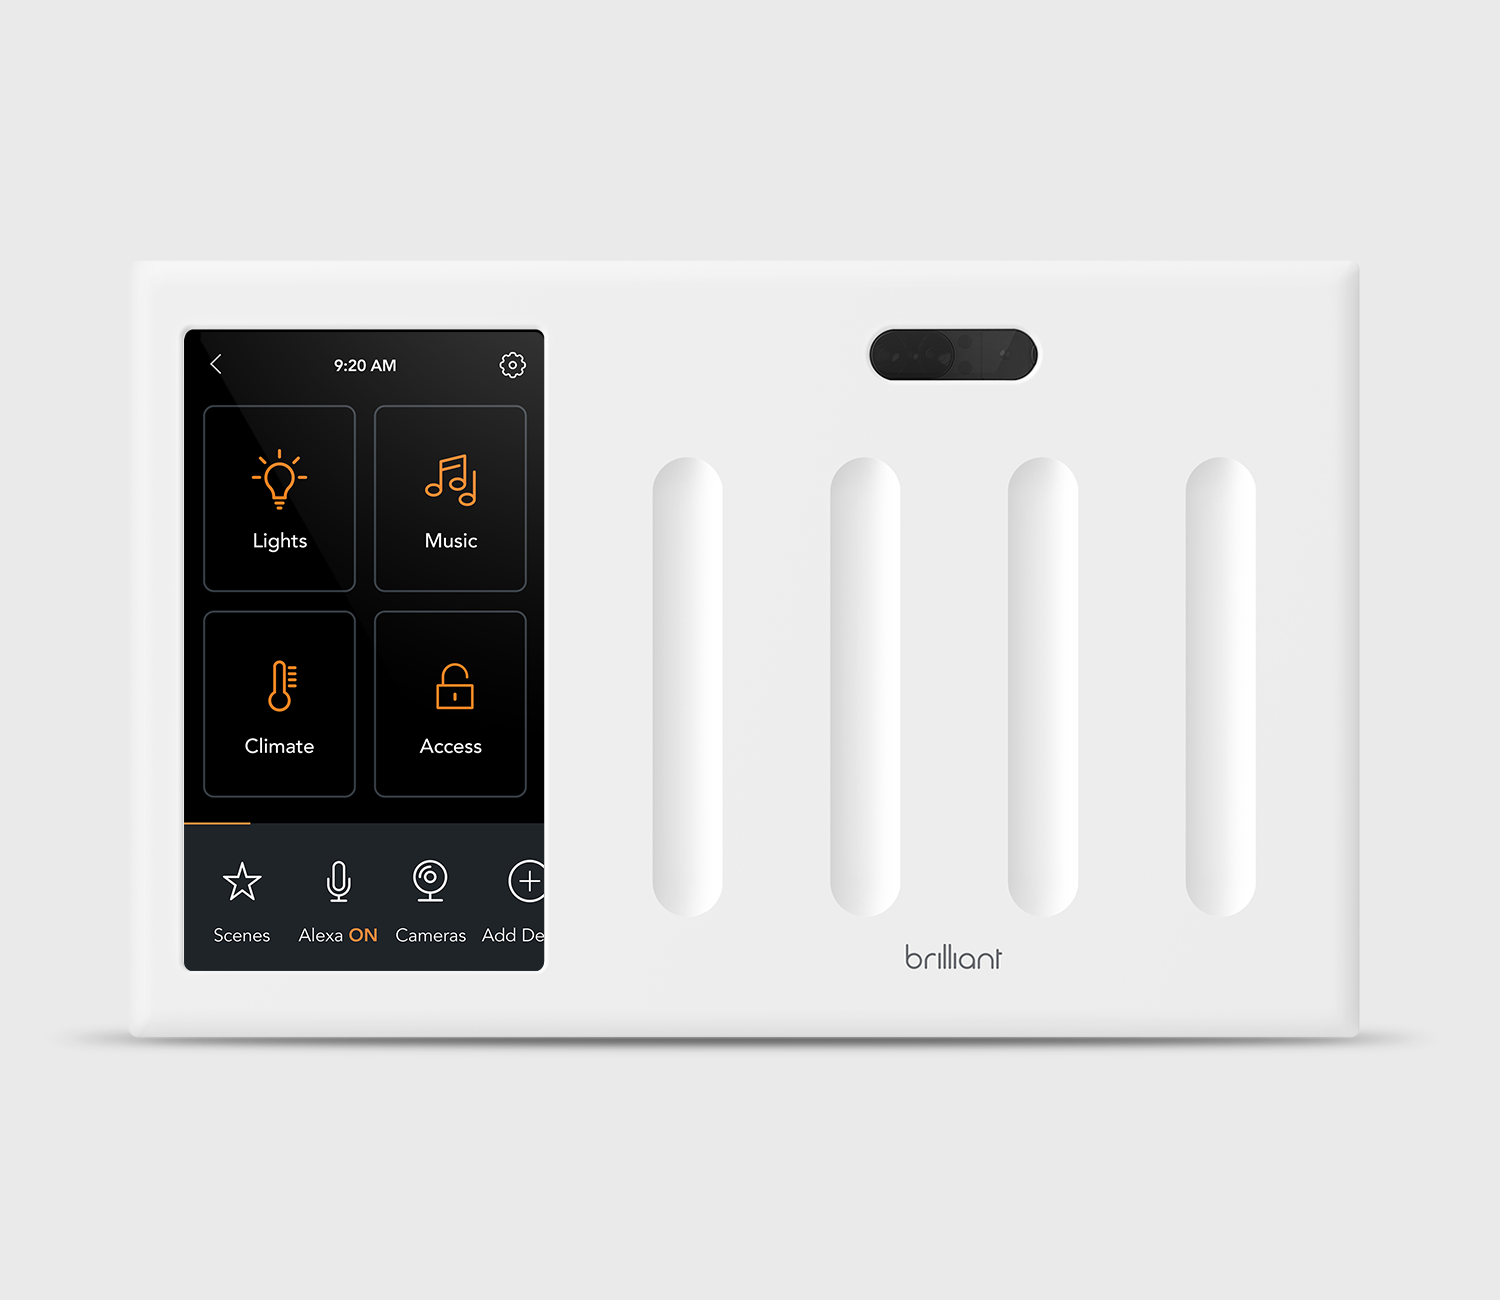 Brilliant All-in-One 4 Switch Smart Home Control - White